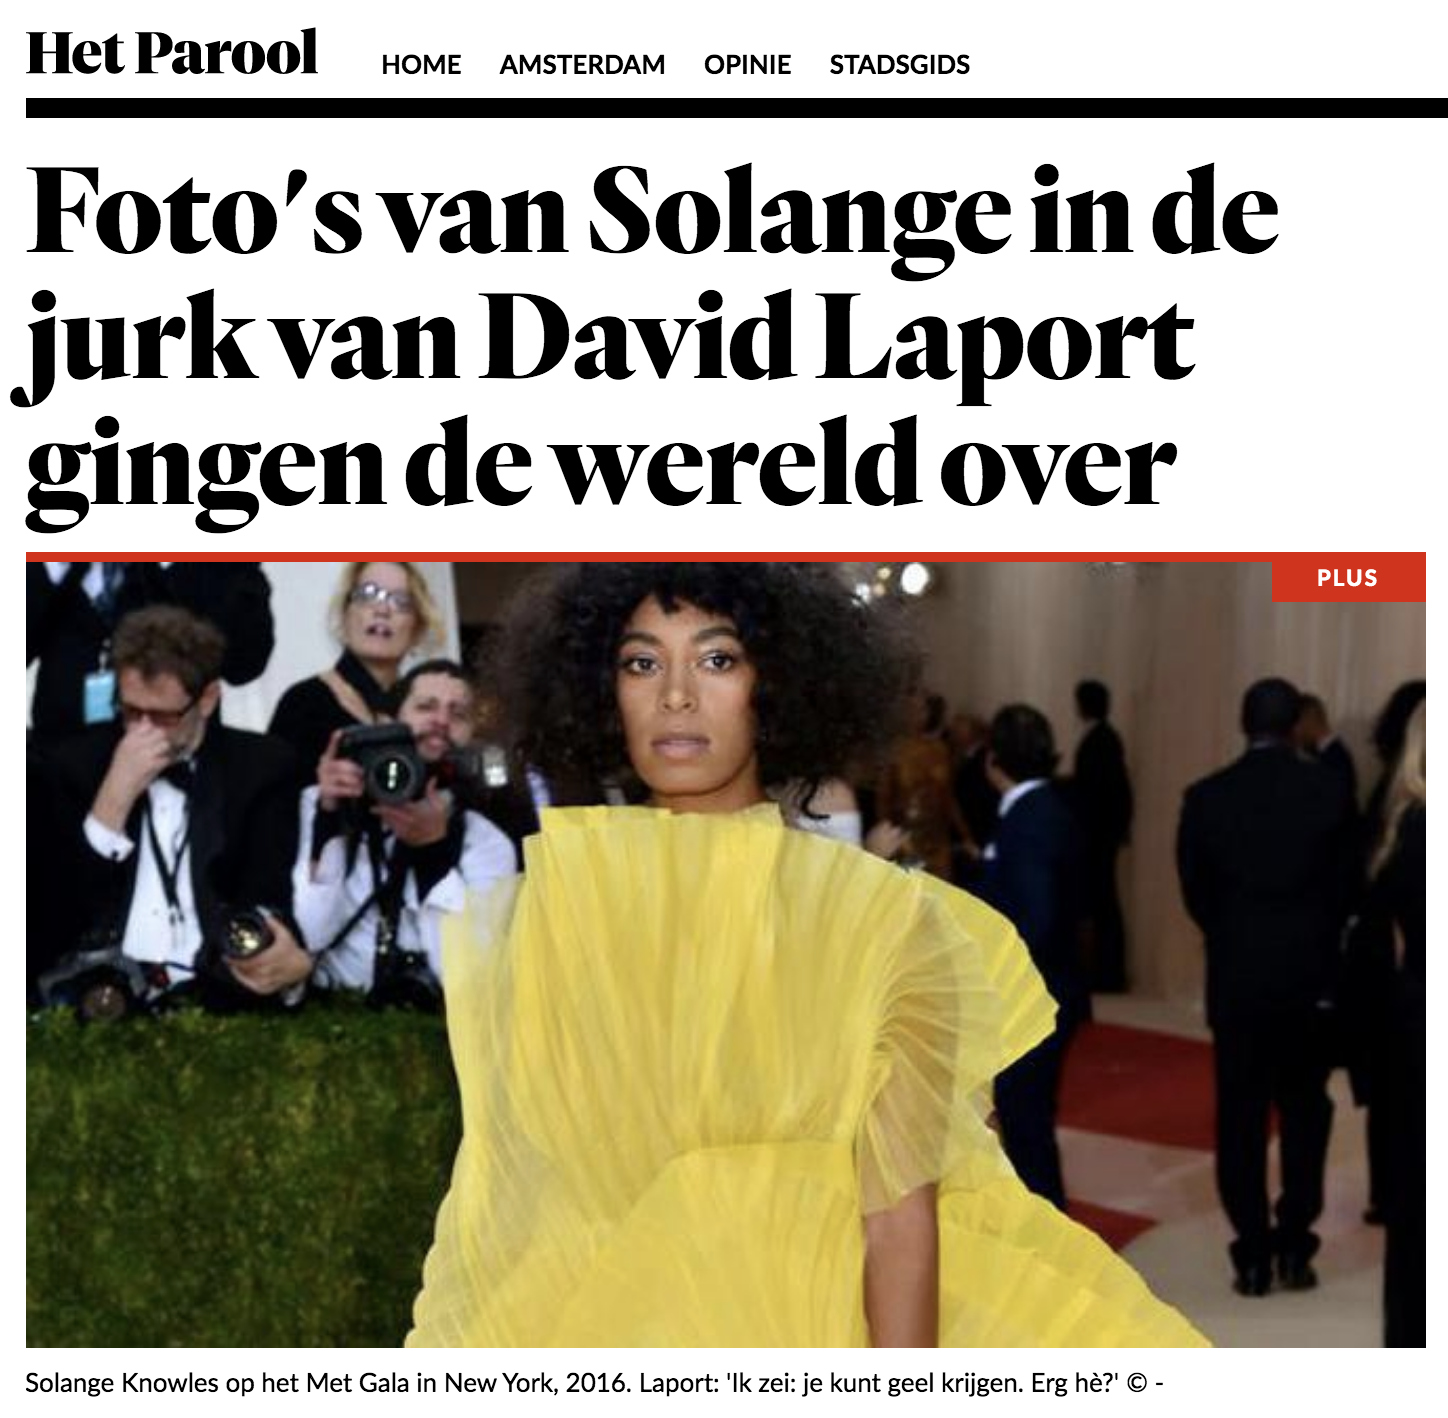 Article in Het Parool about David Laport, KABK alumnus Textile and Fashion 2012